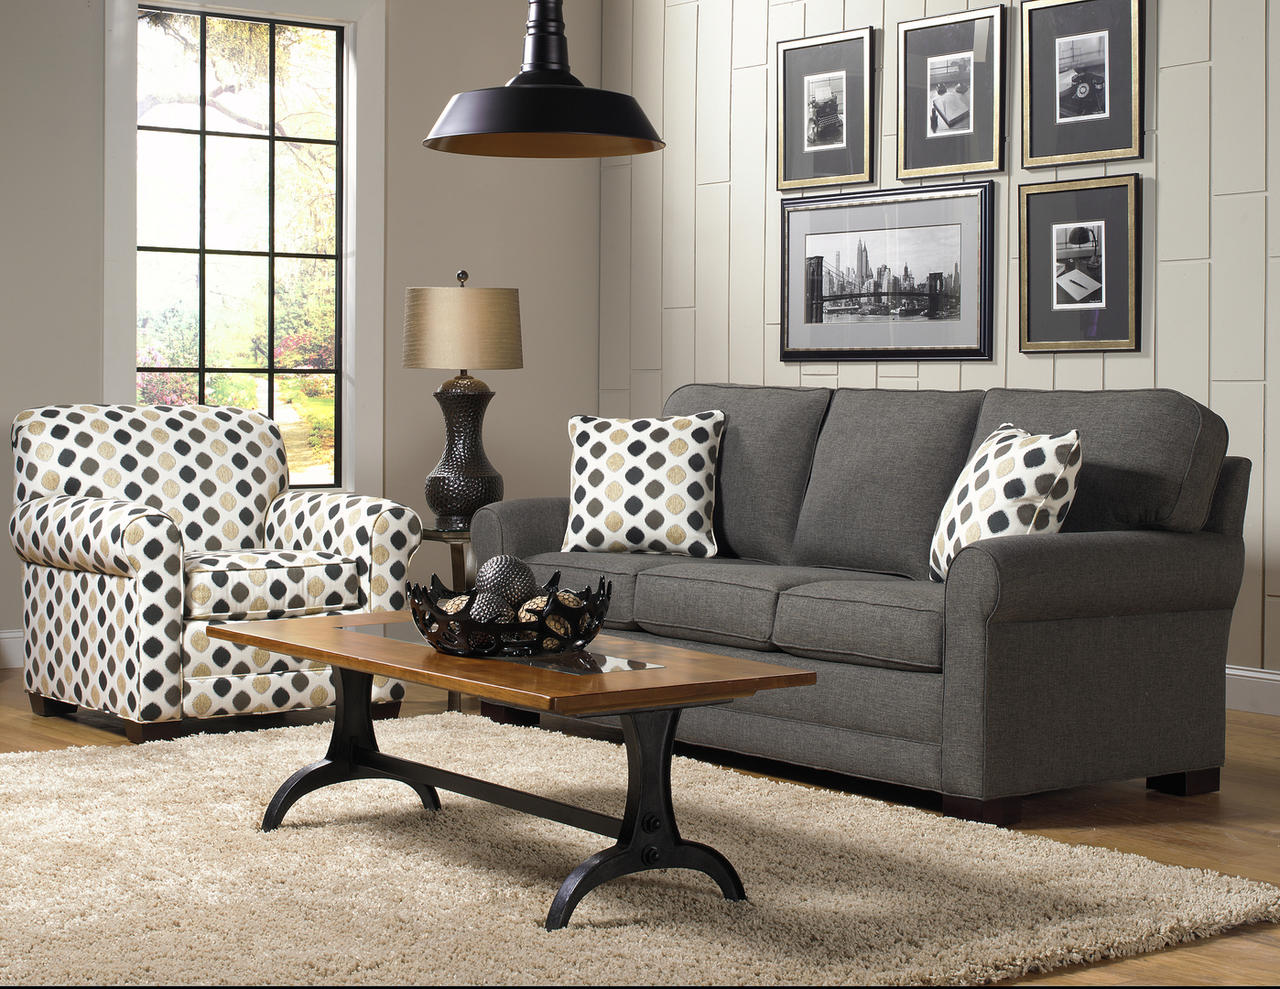 Perfect Better Sofas Roanoke Image Sofas